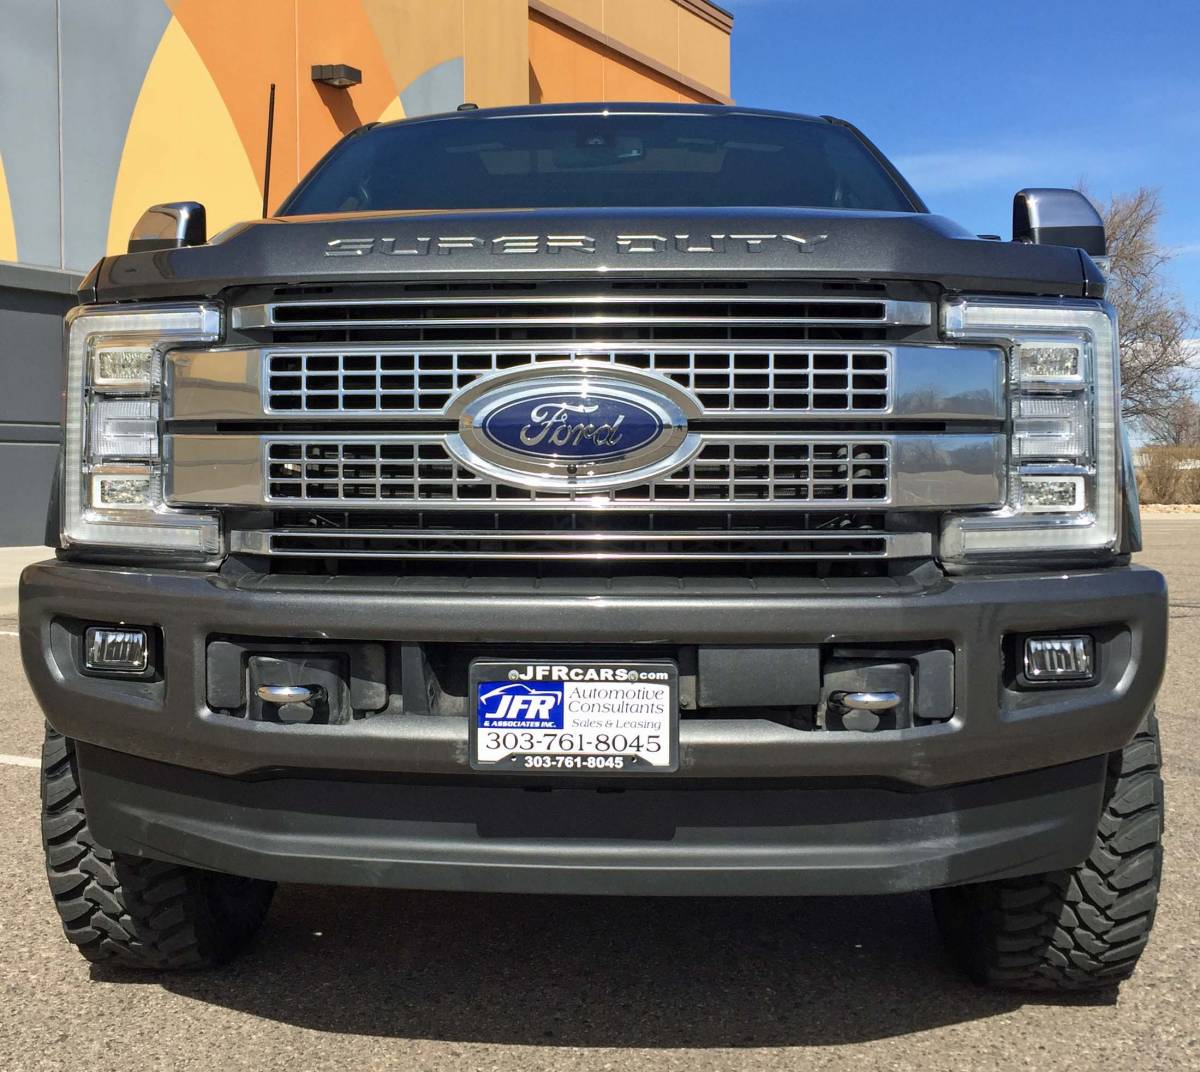 2017 FORD F350 SUPER DUTY READYLIFT LEVELING KIT WTH FUEL OFFROAD WHEELS ON TOYO M/T TIRES ...